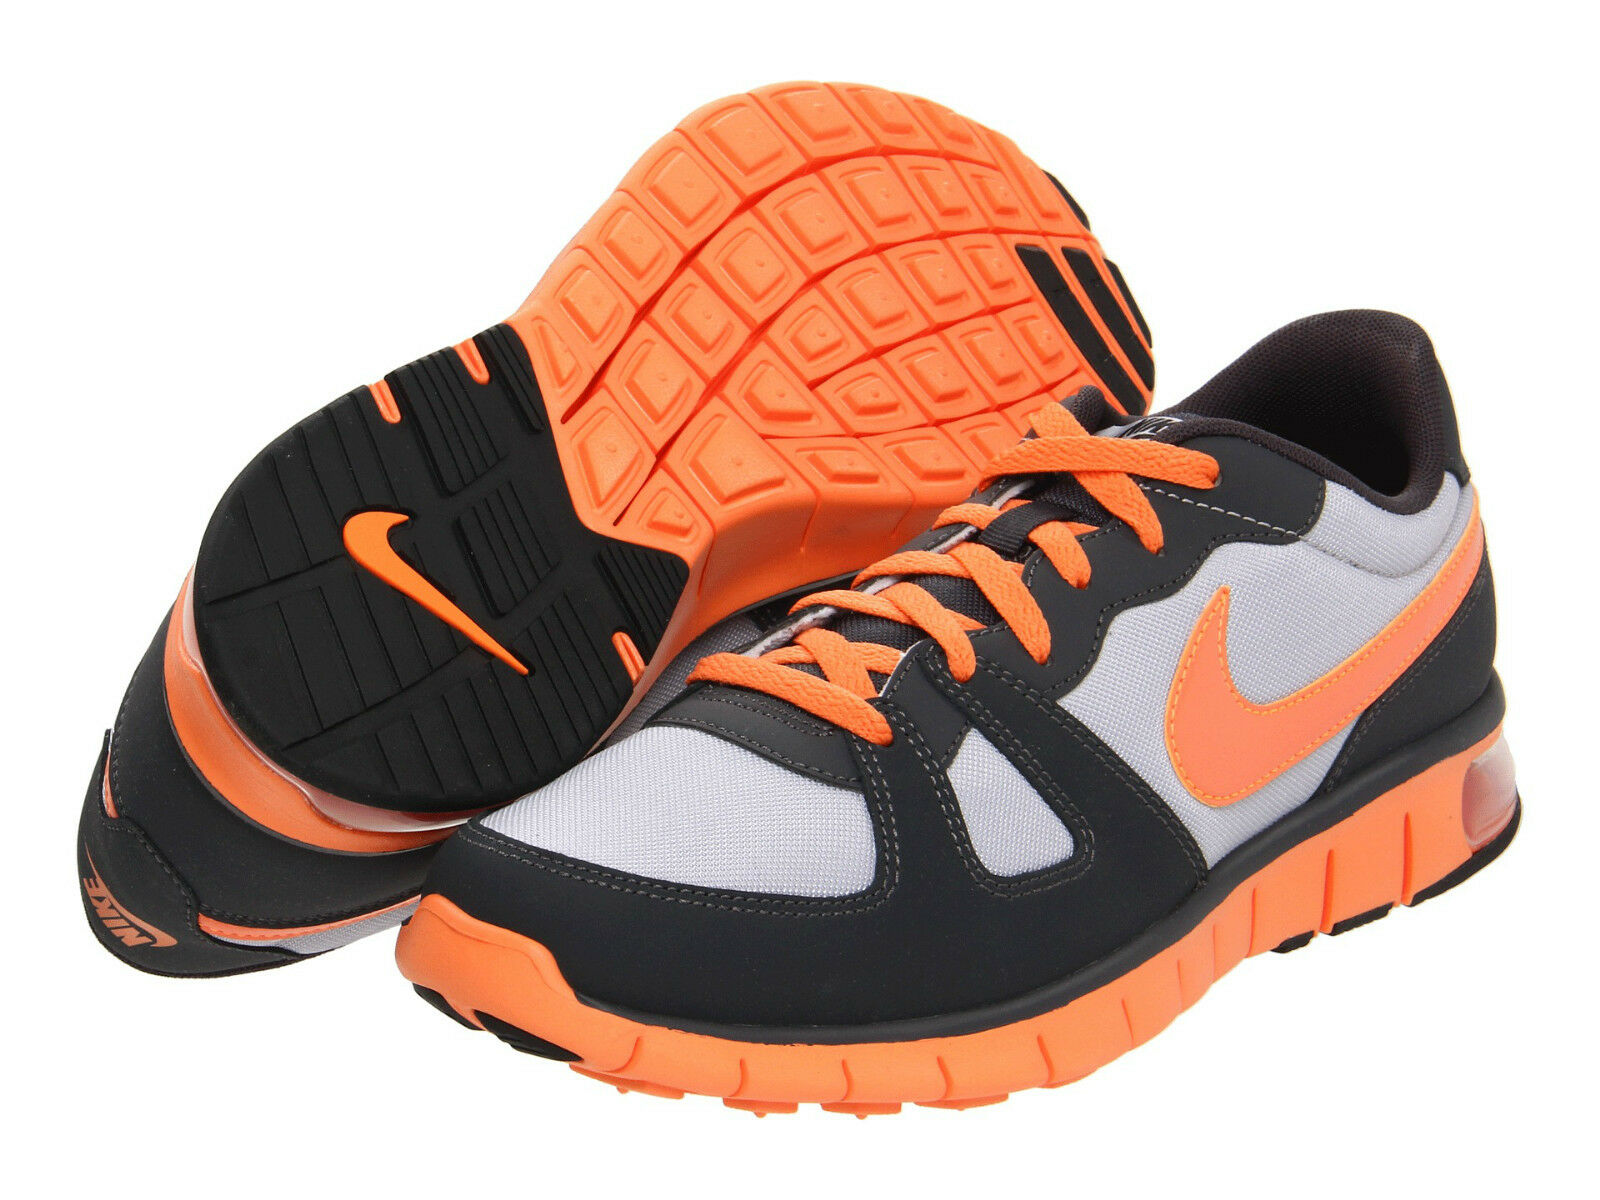 New Men's Nike Air Thera -Wolf Grey Anthracite Total orange - Size 10